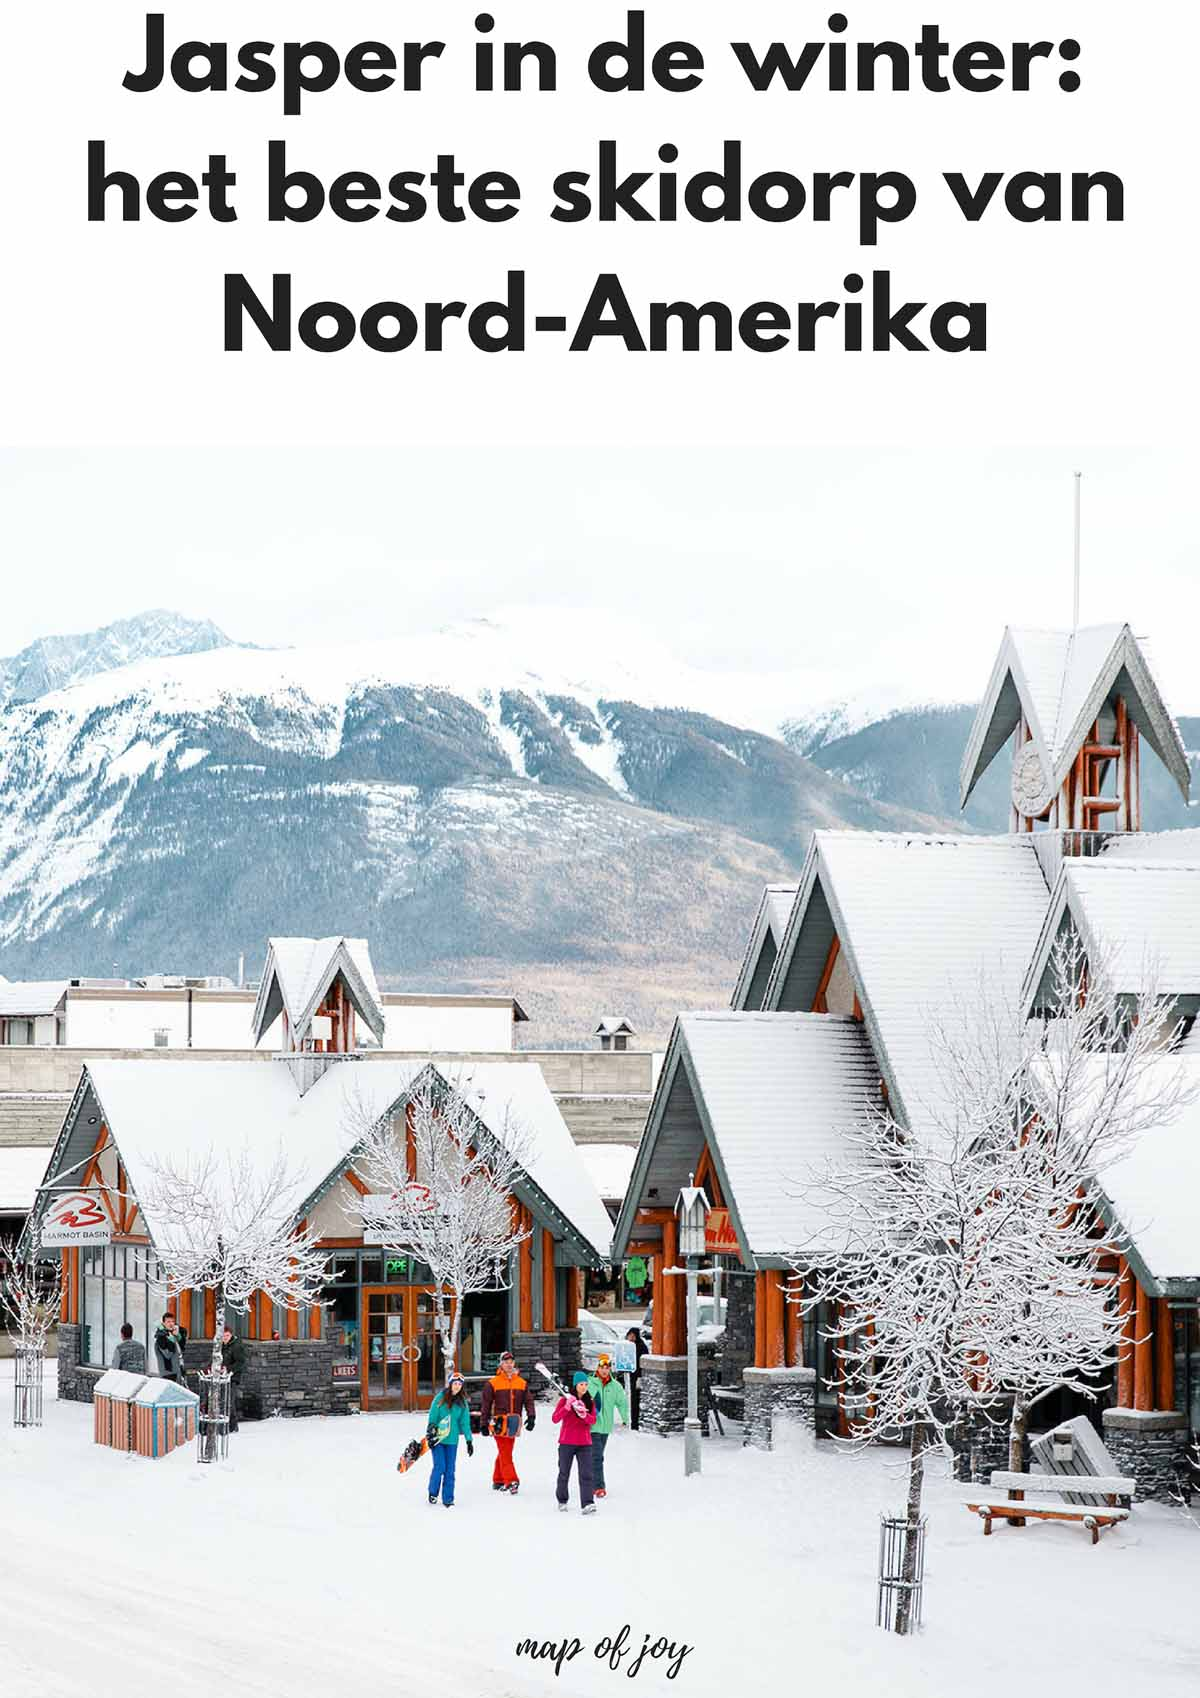 Jasper in de winter: het beste skidorp van Noord-Amerika - Map of Joy